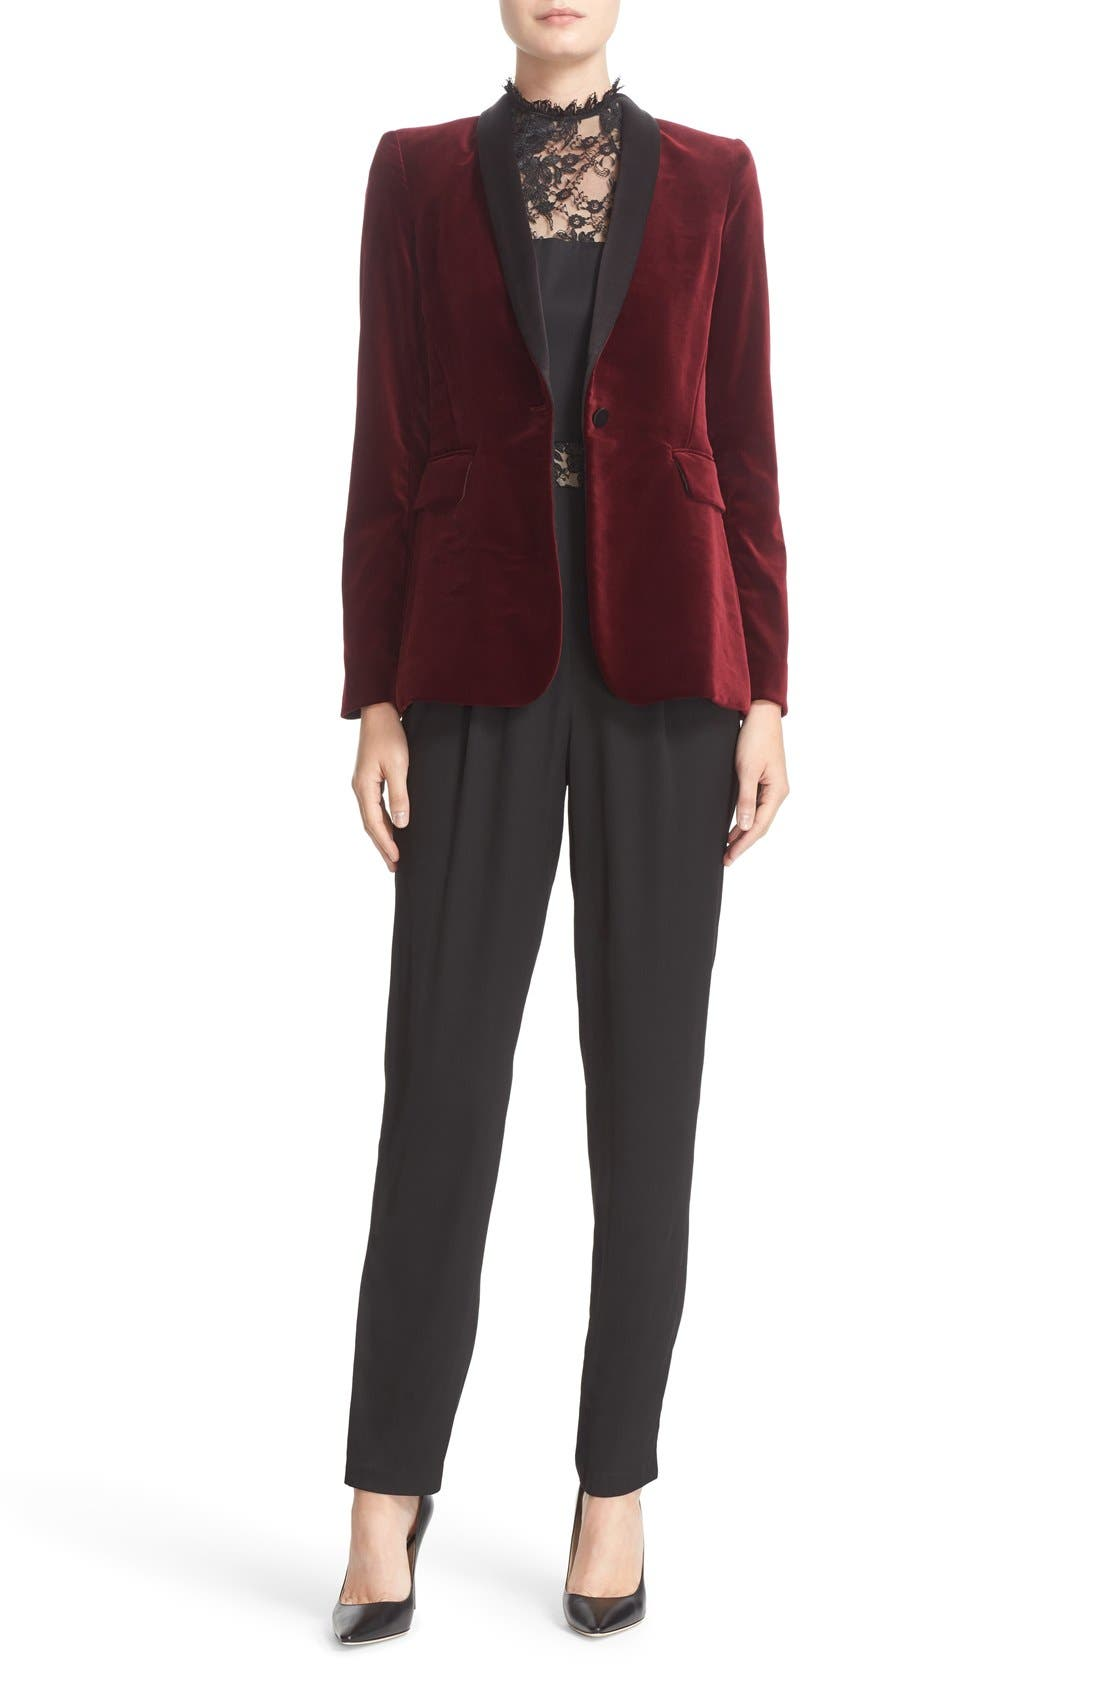 'Macey' Satin Lapel Velvet One-Button Blazer,                             Alternate thumbnail 2, color,                             Bordeaux/ Black